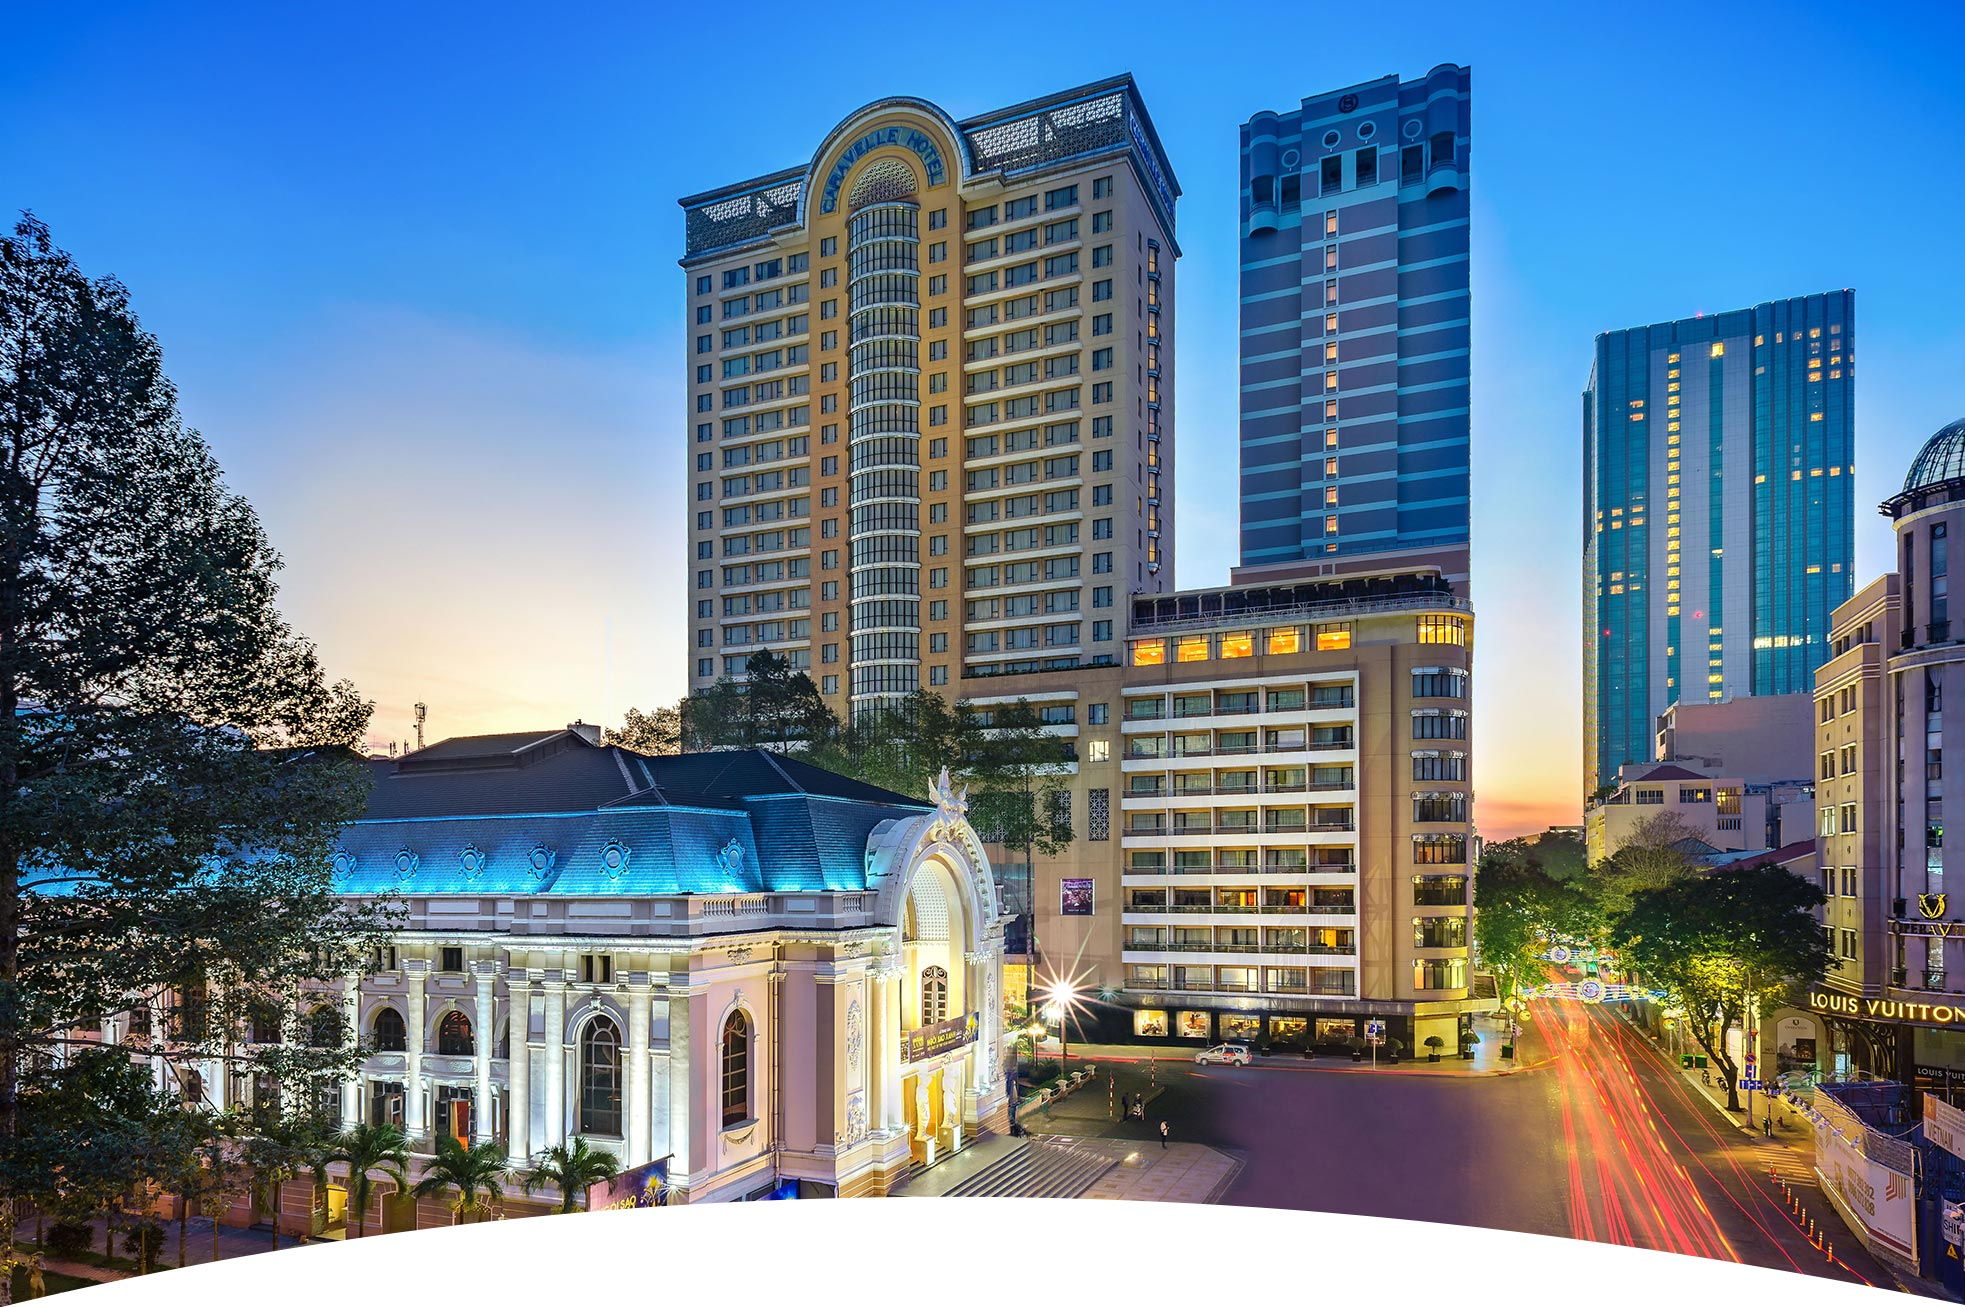 Best Hotel in Ho Chi Minh City-Caravelle Hotel